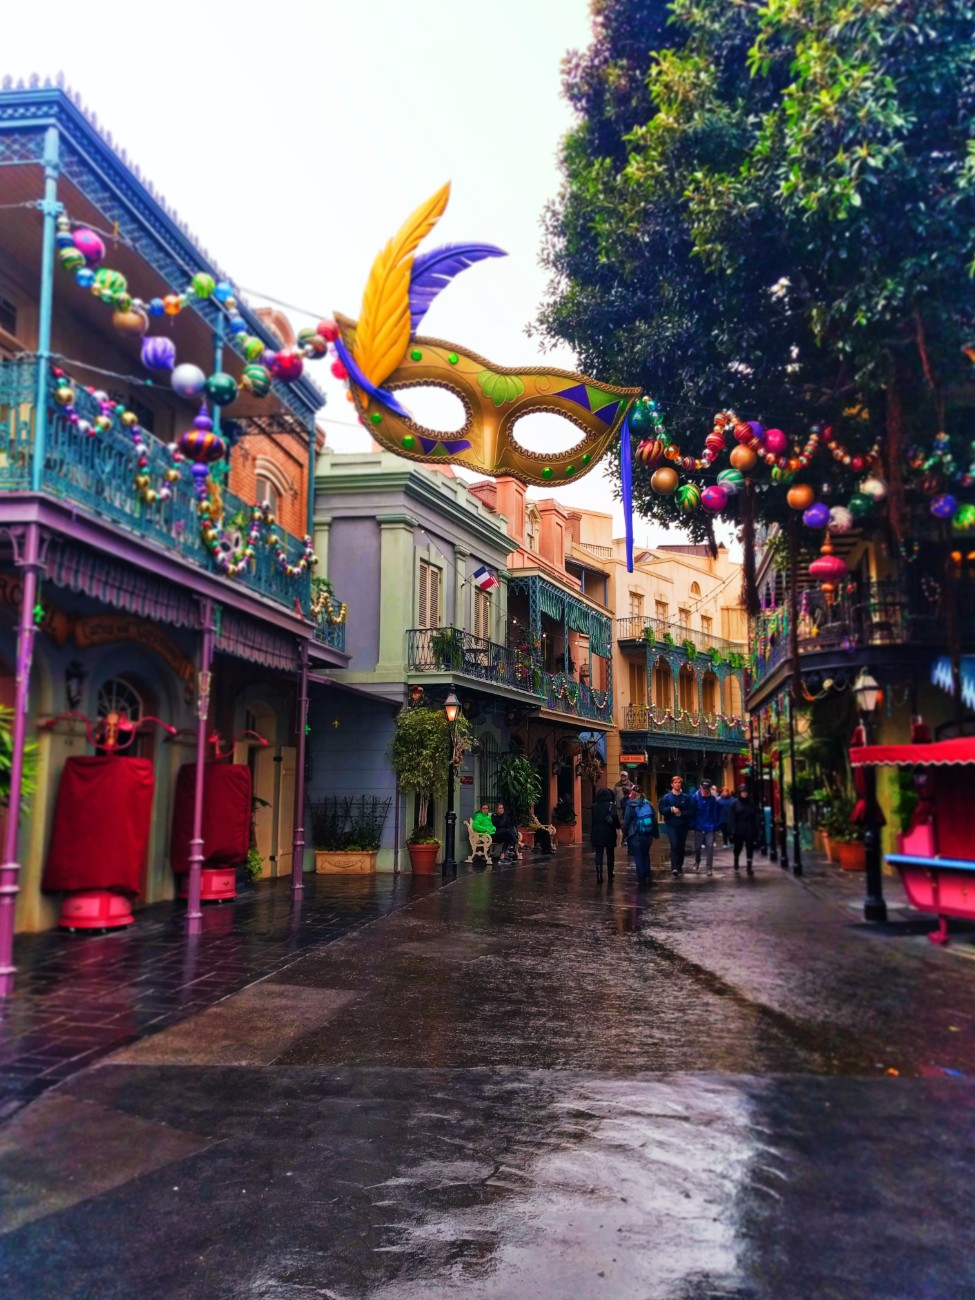 Mardi Gras Decorations in New Orleans Square Disneyland 2